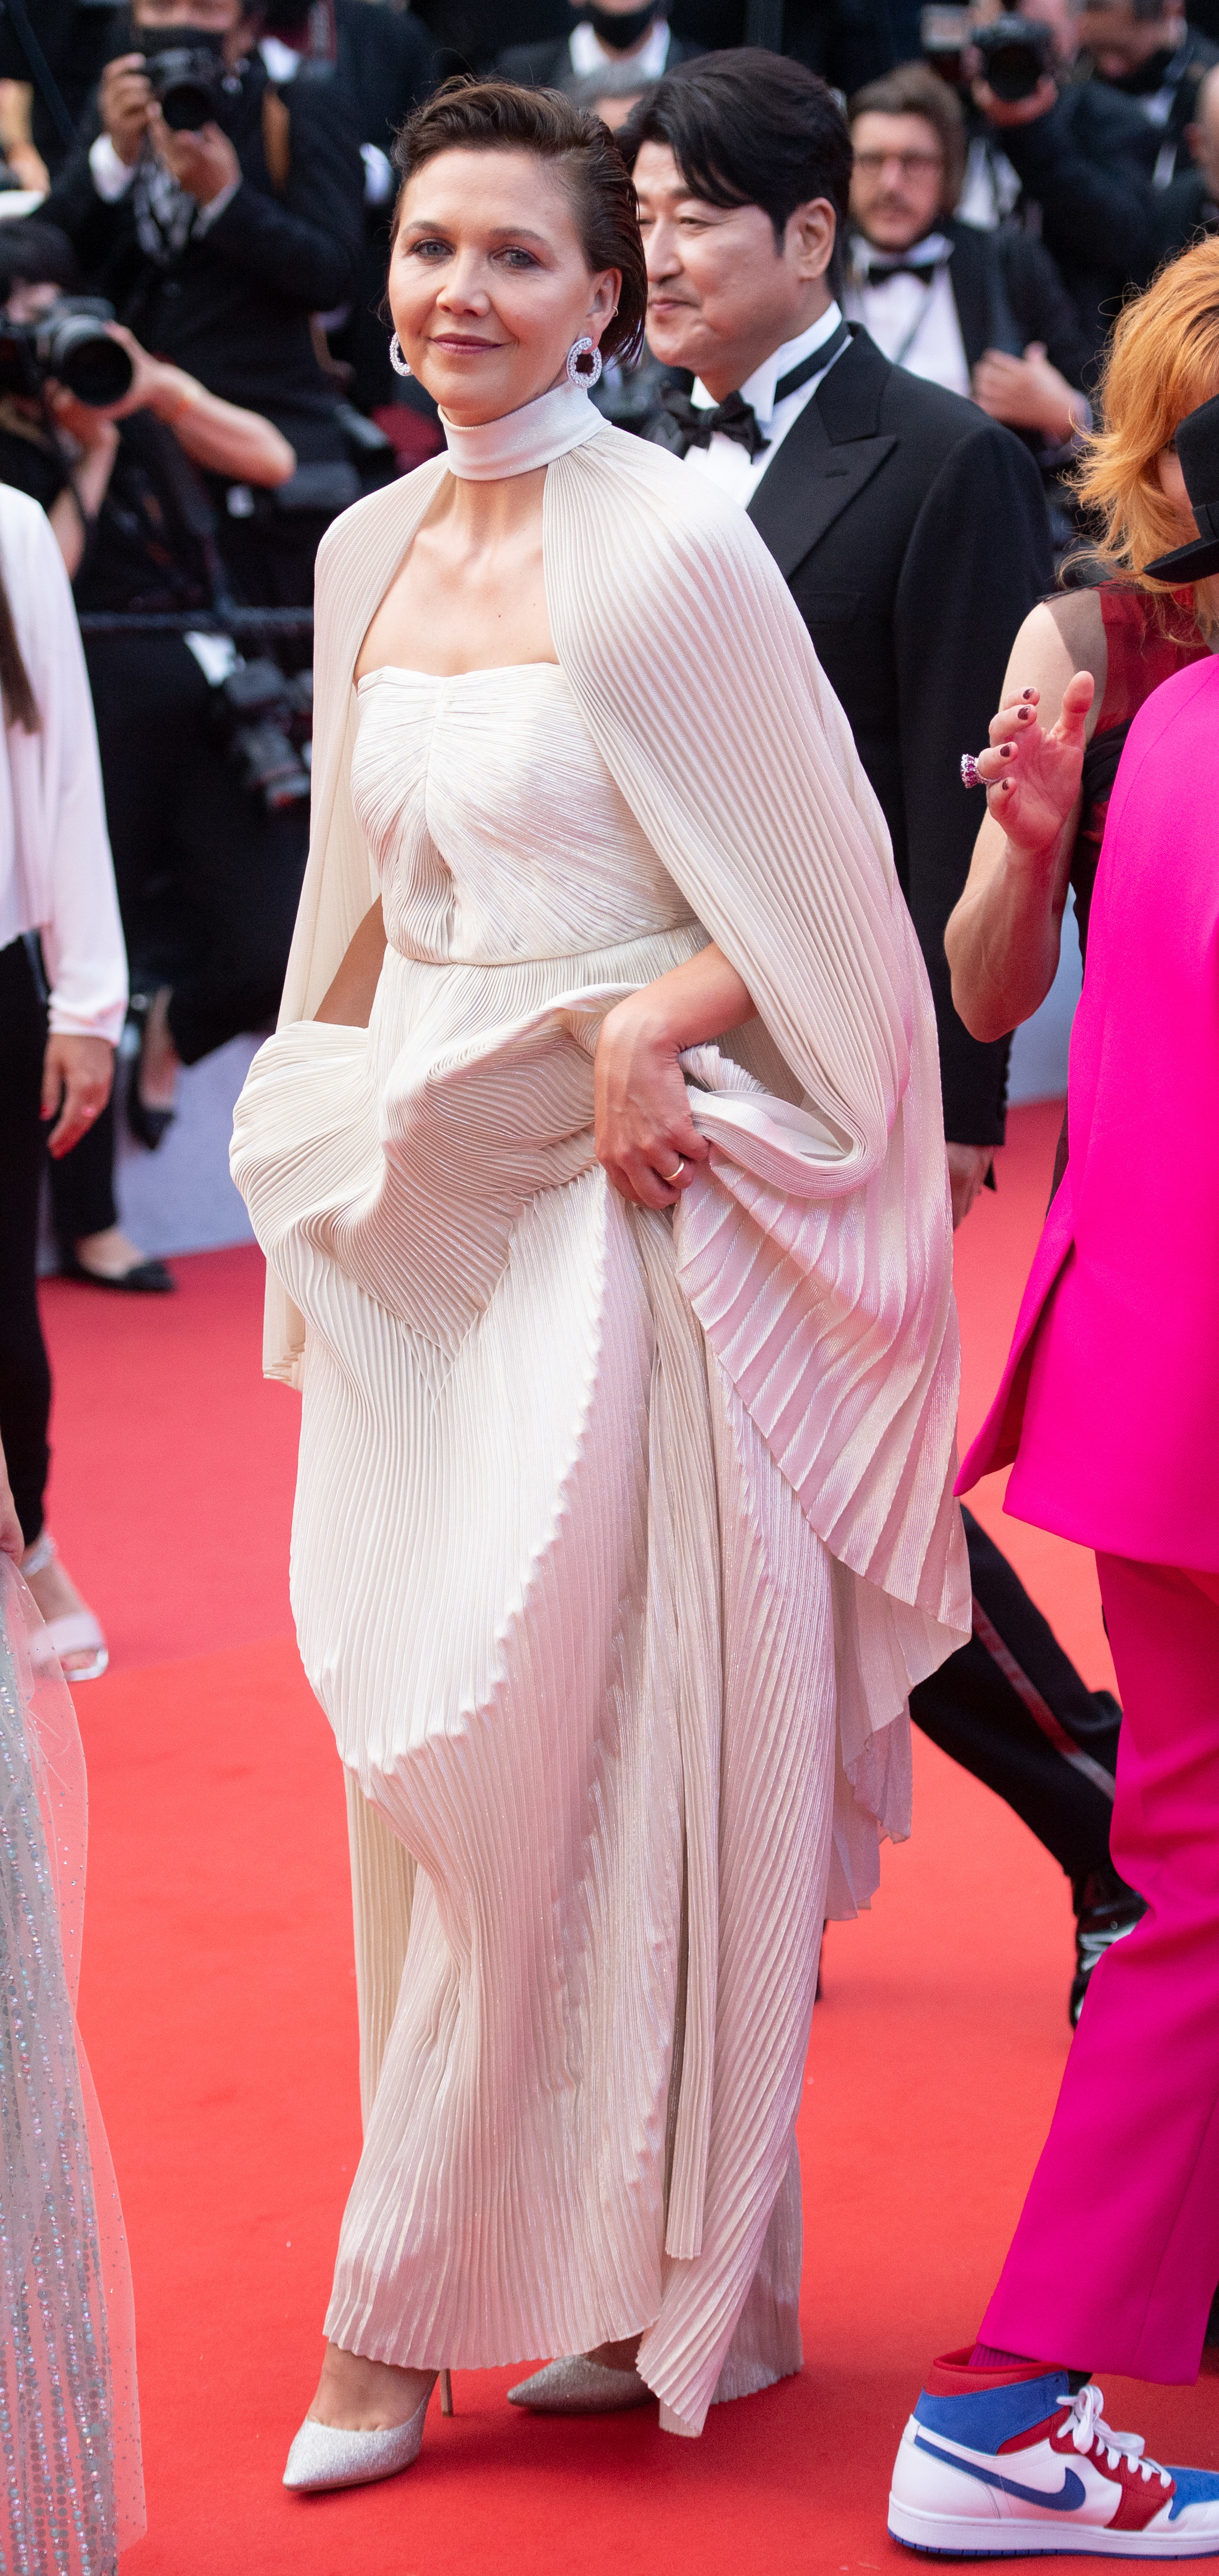 Maggie Gyllenhaal on the red carpet at the Cannes Film Festival